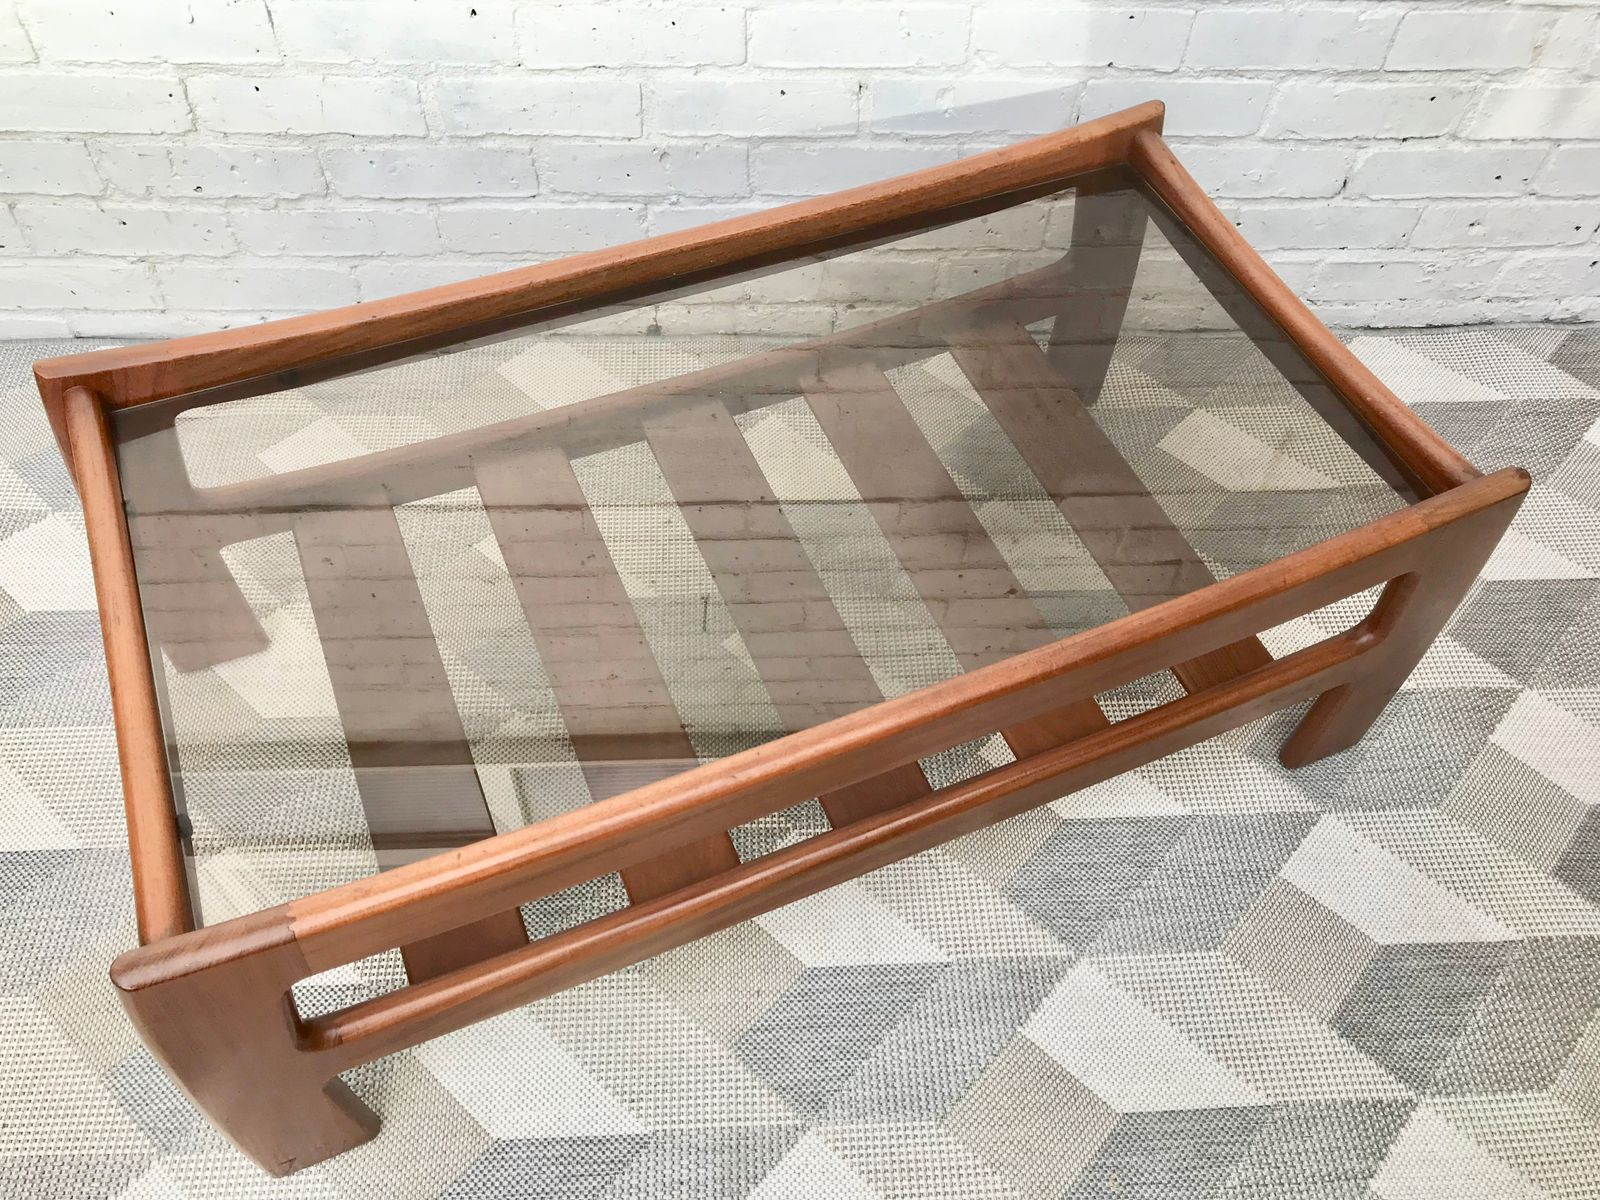 Vintage Glass Coffee Table with Shelf from G Plan for sale at Pamono